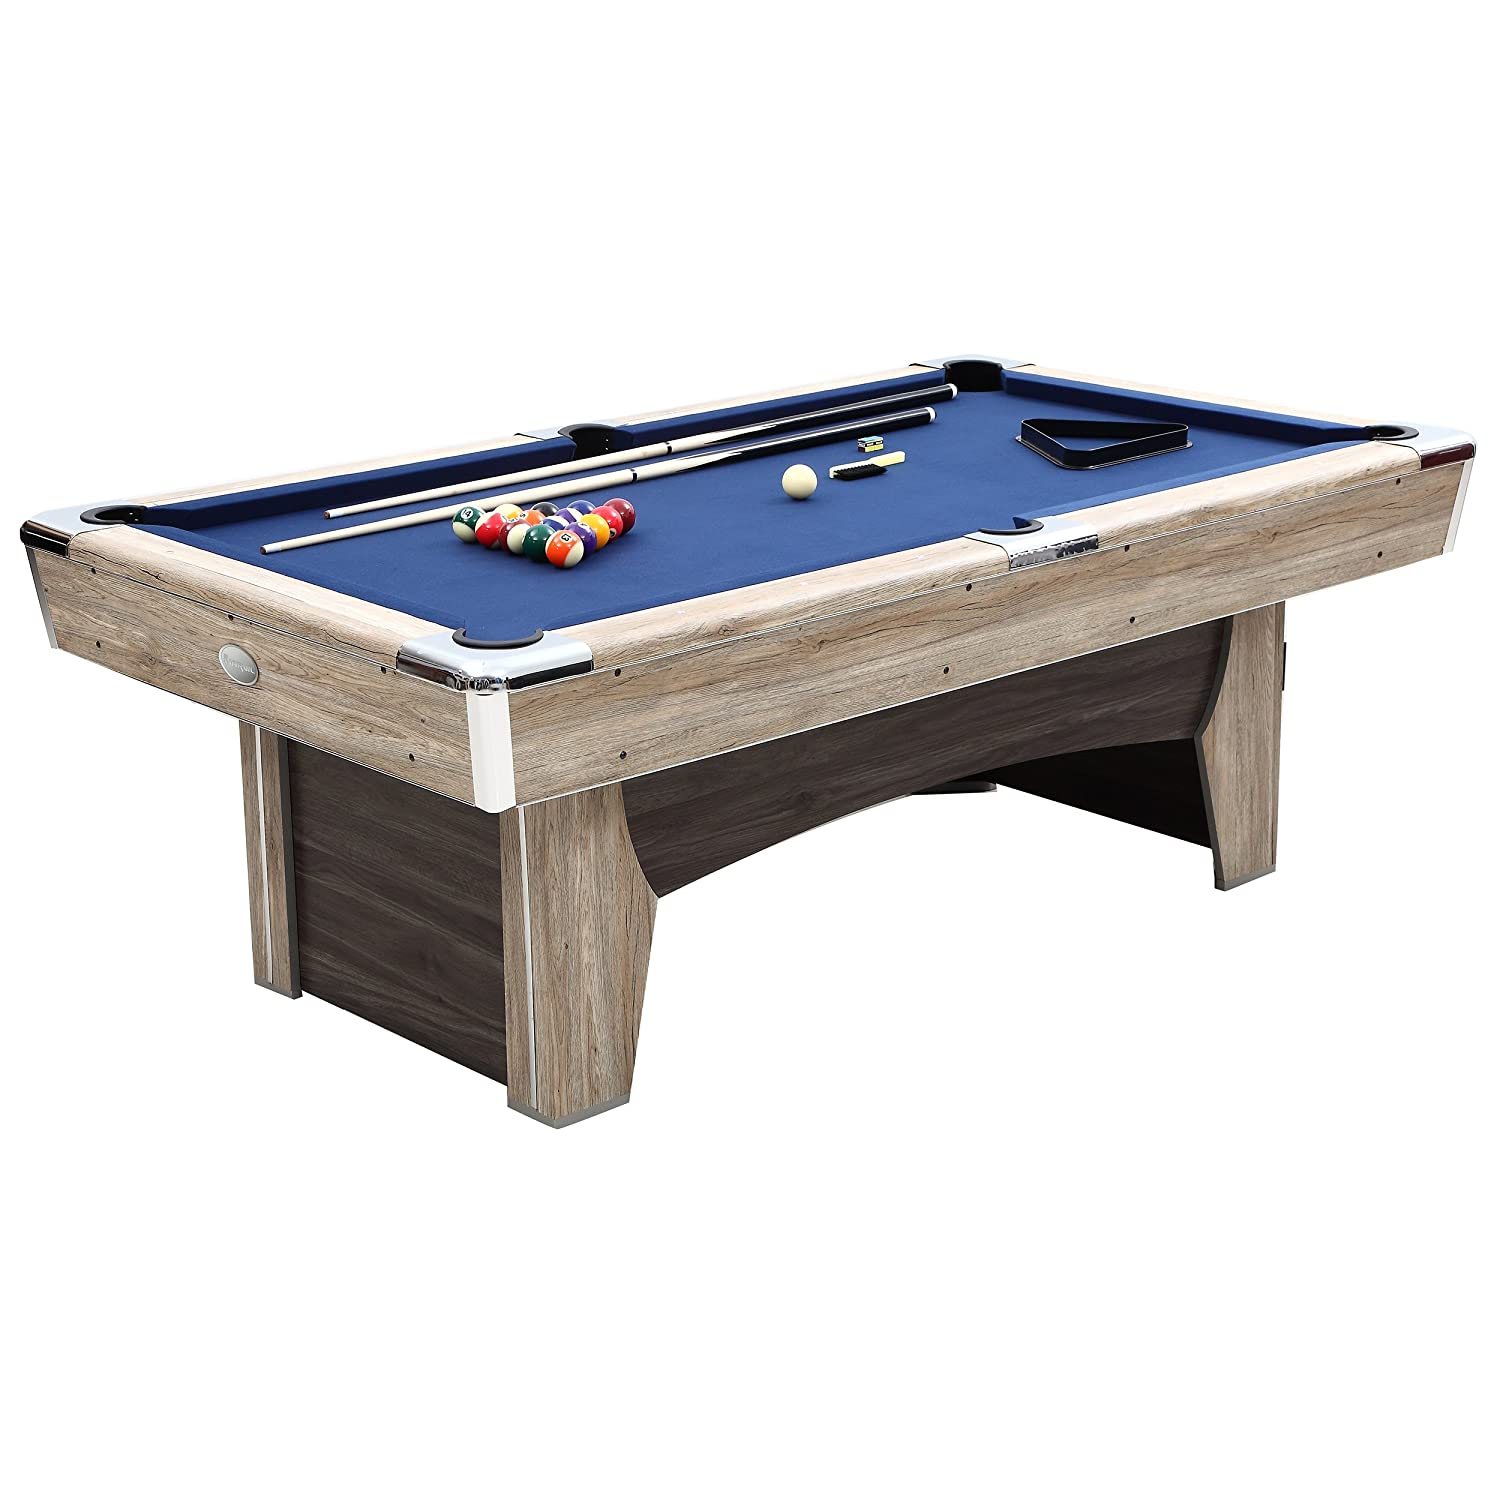 Swell Pool Billiards Tables Amazon Com Pool Billiards Largest Home Design Picture Inspirations Pitcheantrous